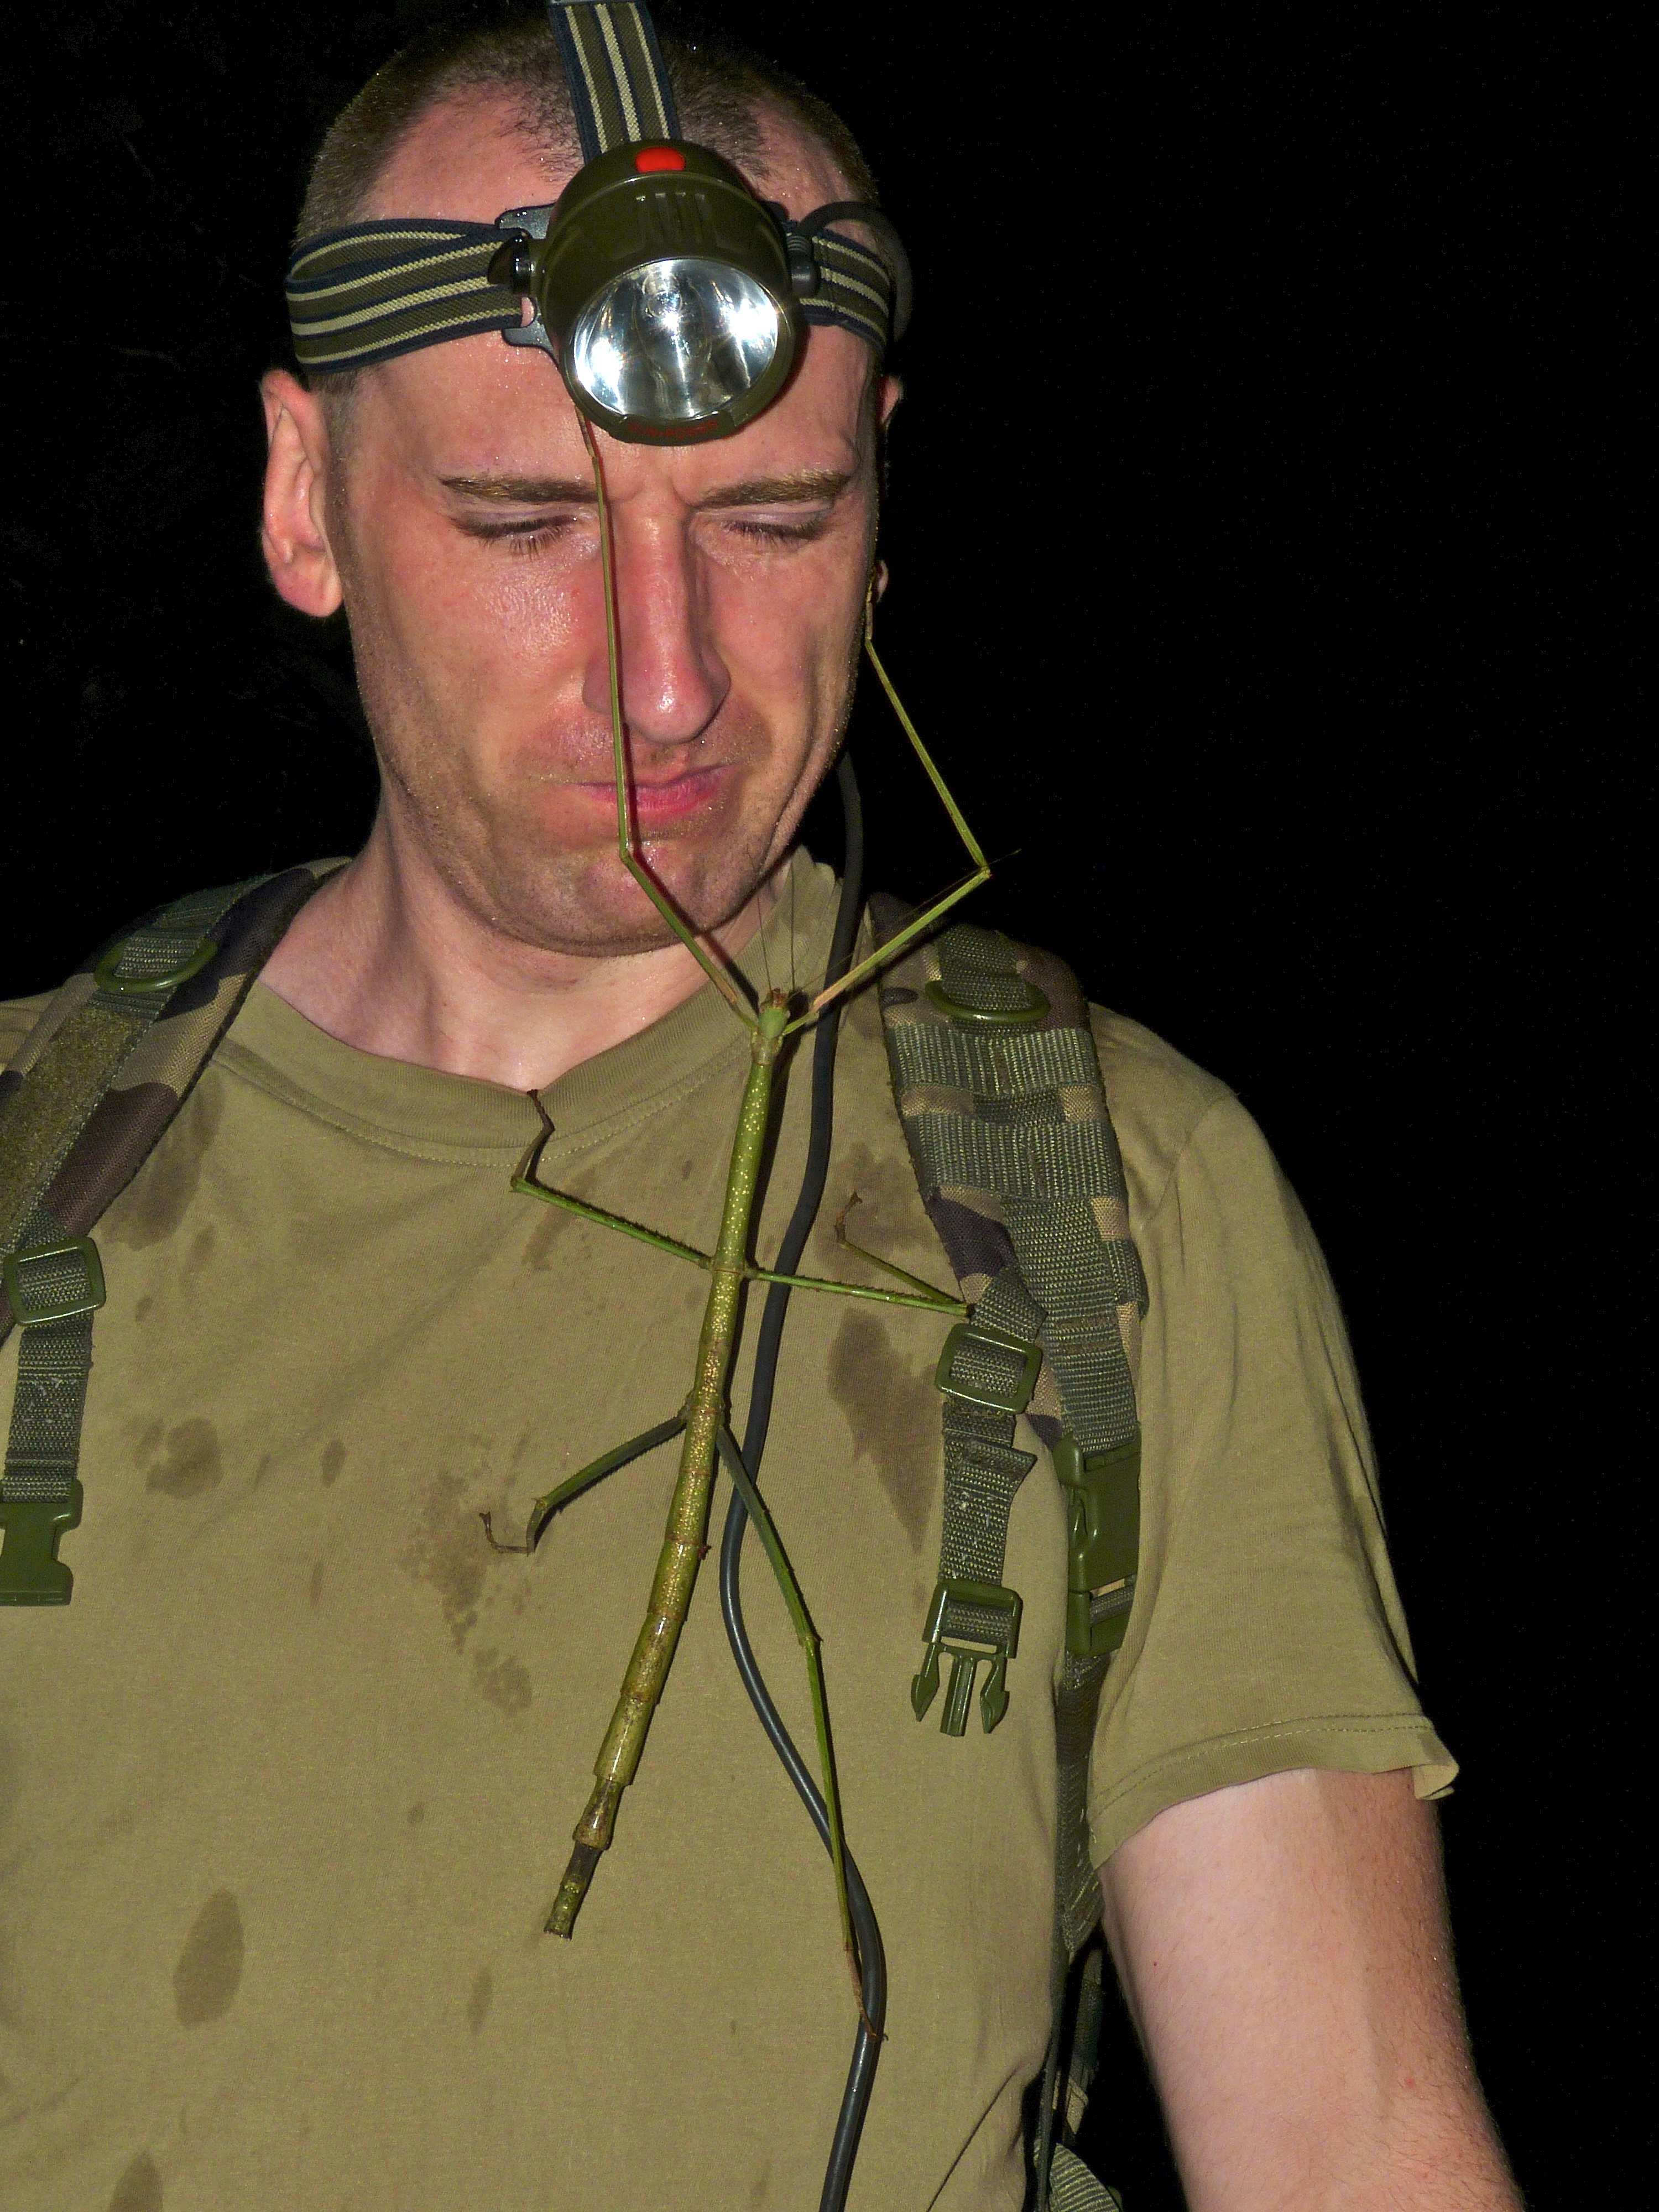 https://upload.wikimedia.org/wikipedia/commons/6/62/Giant_Stick_Insect_%28Phobaeticus_serratipes%29_on_Sylvain_%288727651923%29.jpg